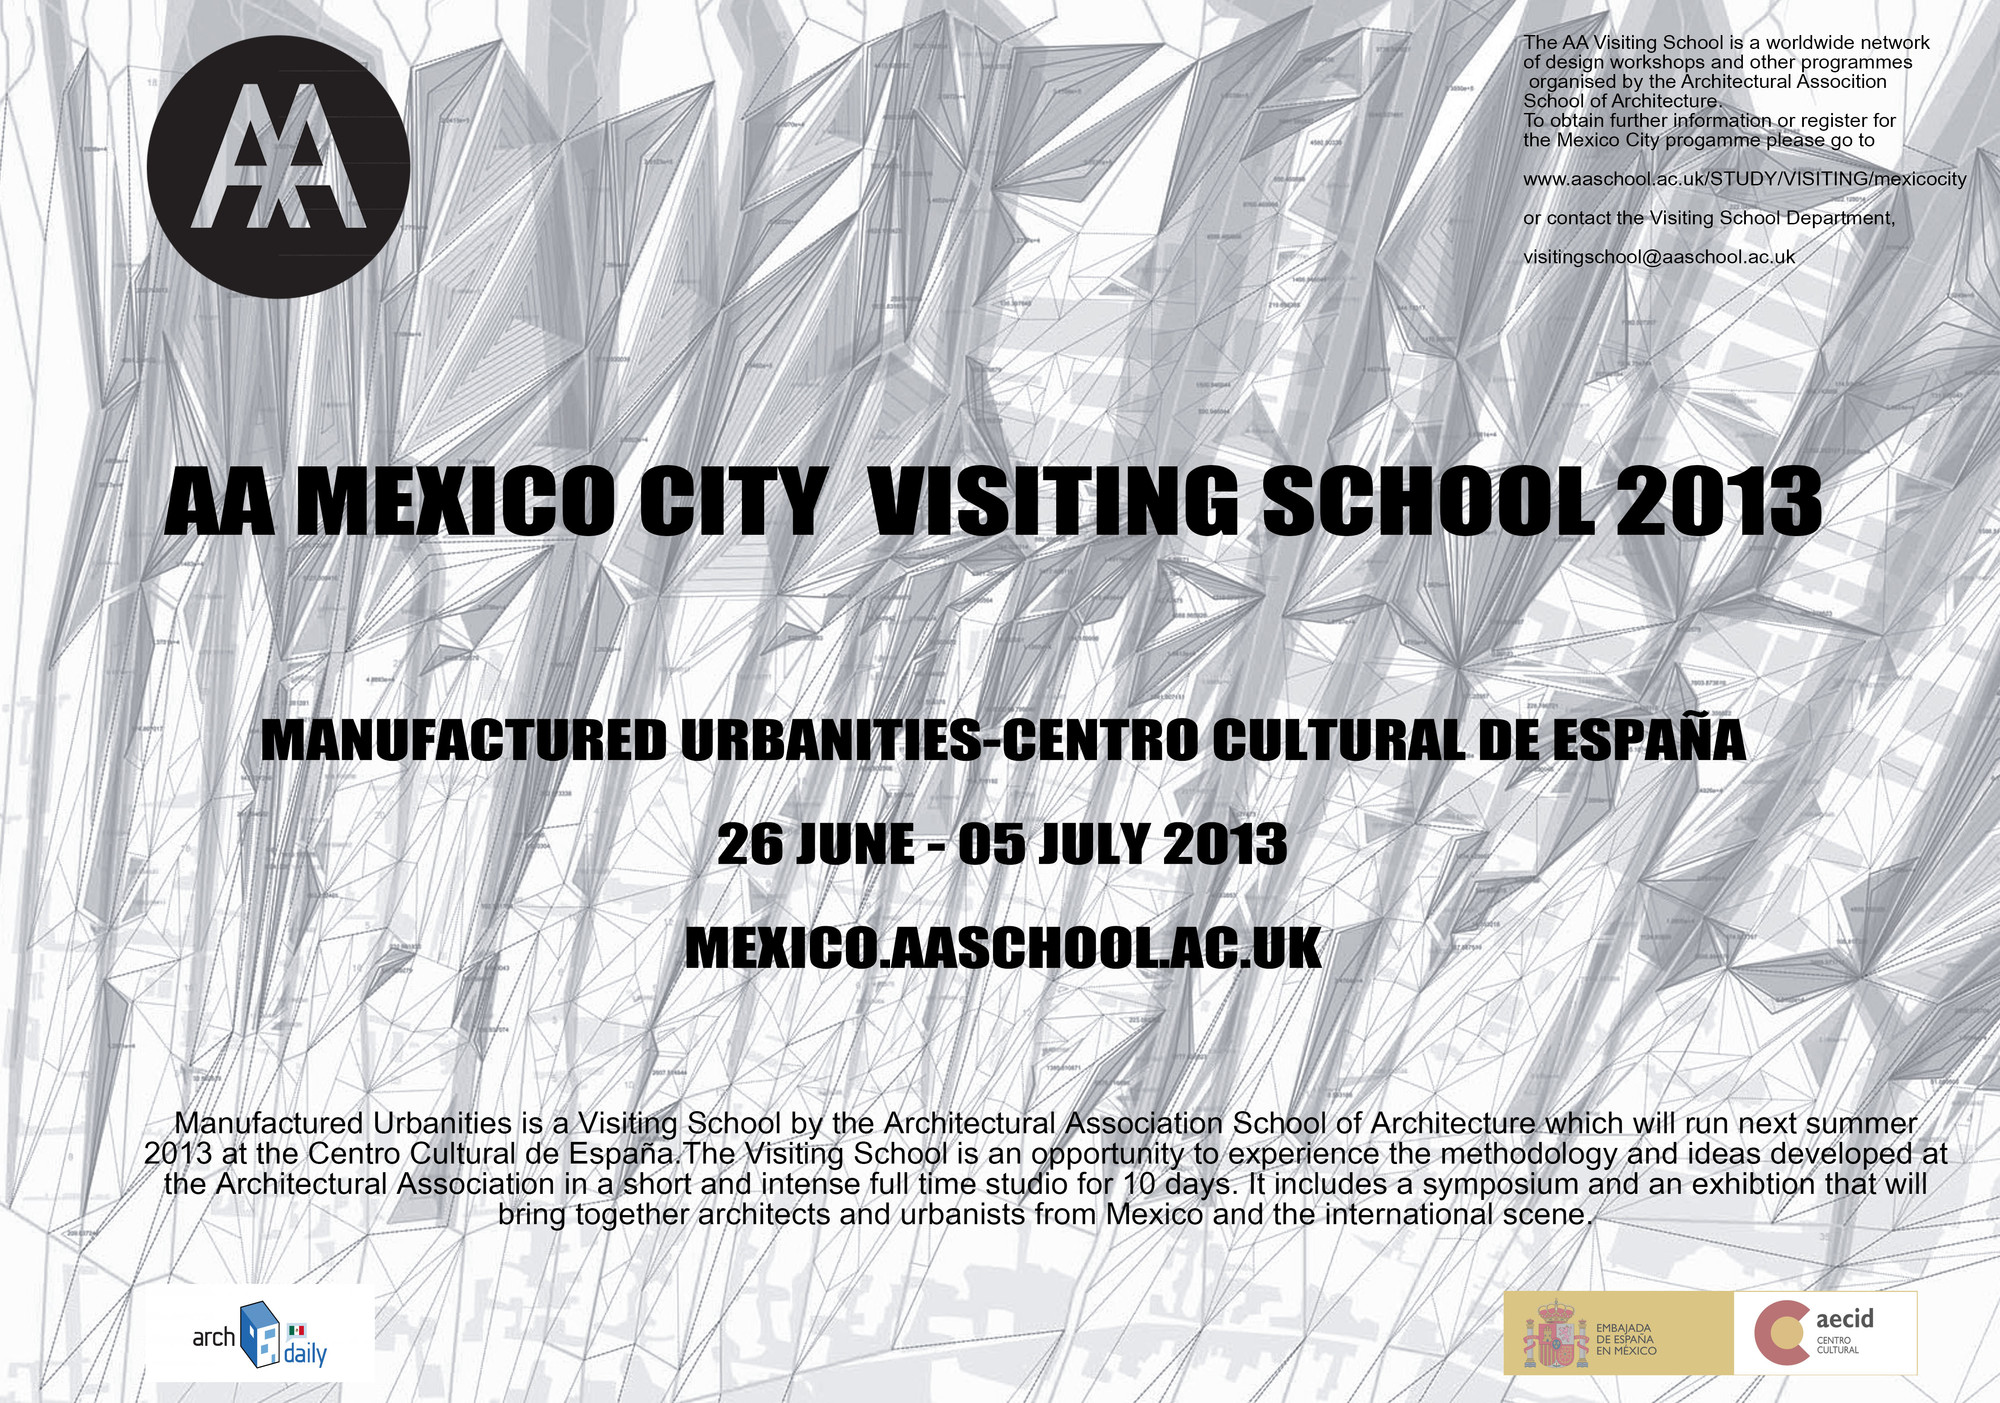 AA MEXICO CITY VISITING SCHOOL 2013: Manufactured Landscapes